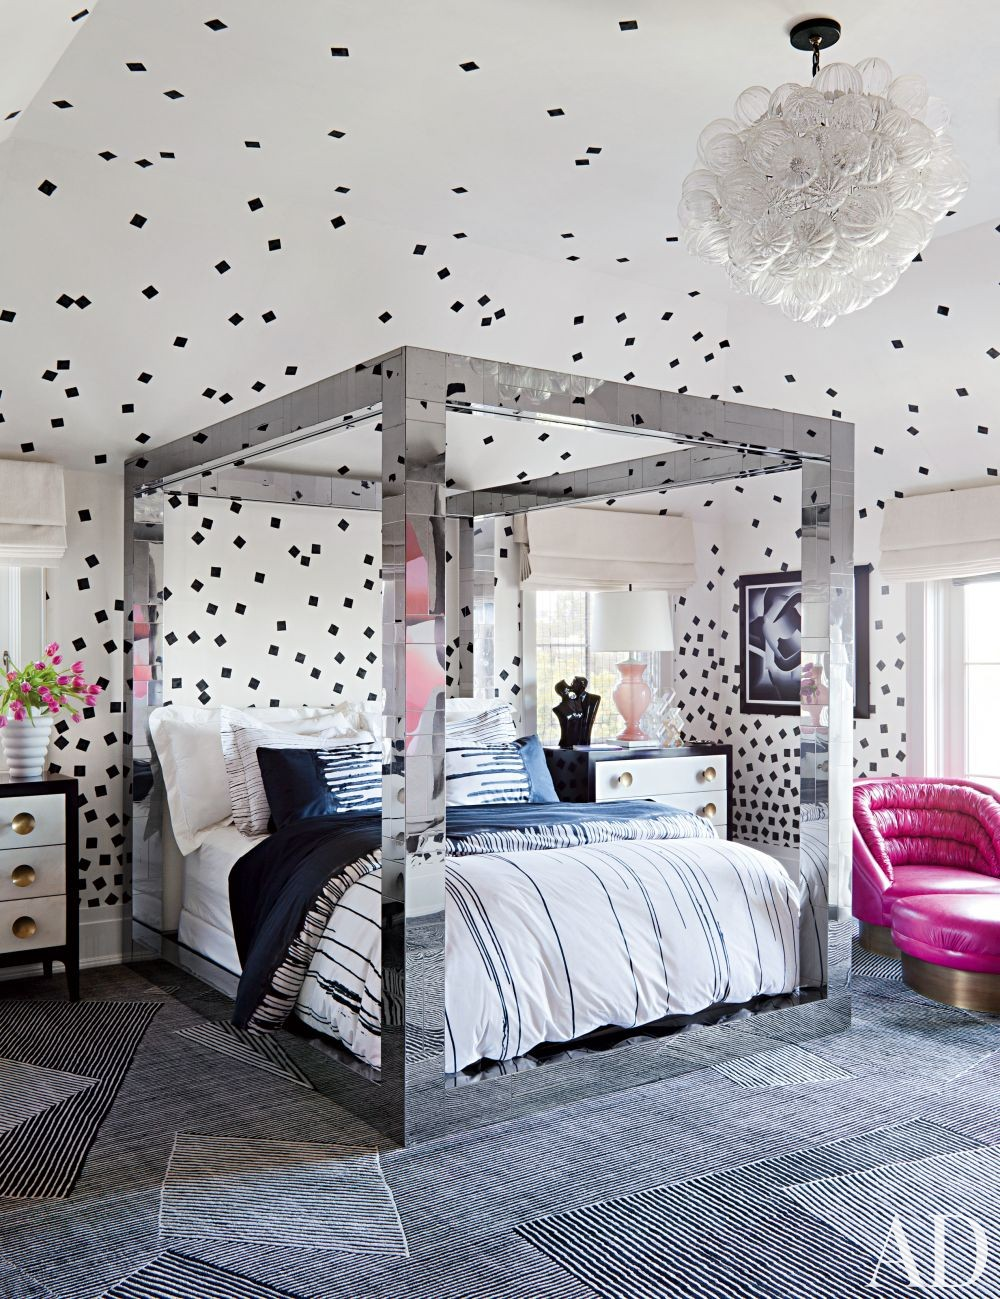 disco room decor mirrored bed frame black and white better decorating bible blog